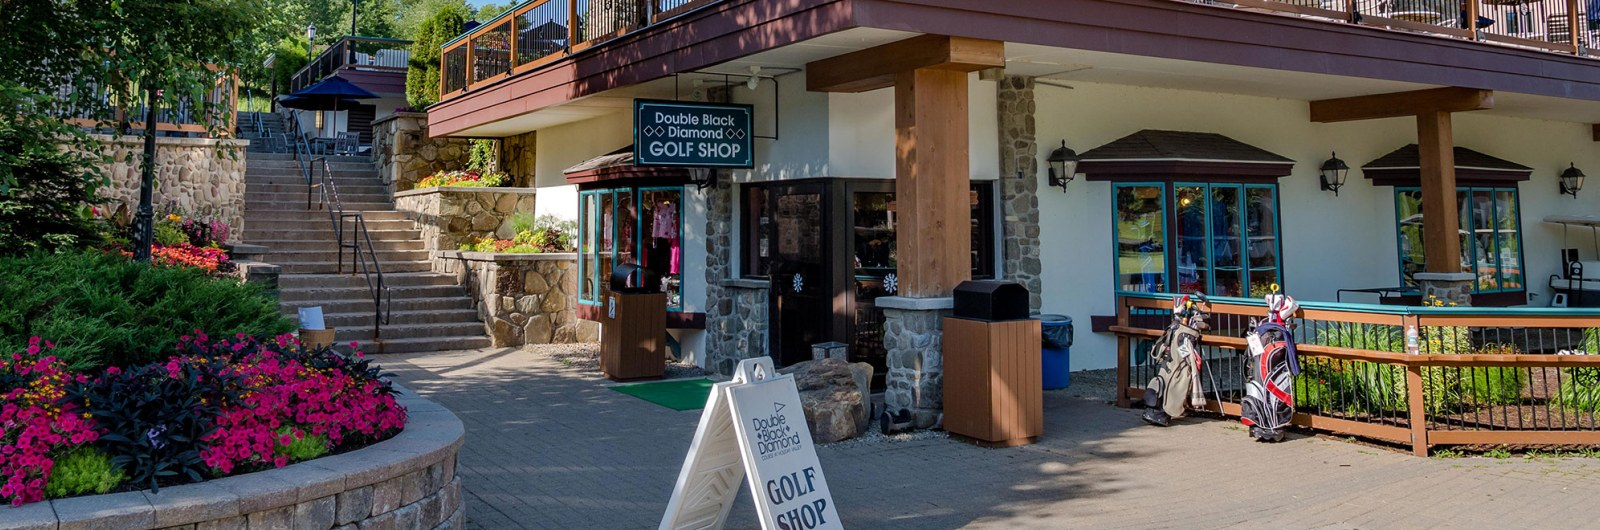 Golf shop at Holiday Valley resort